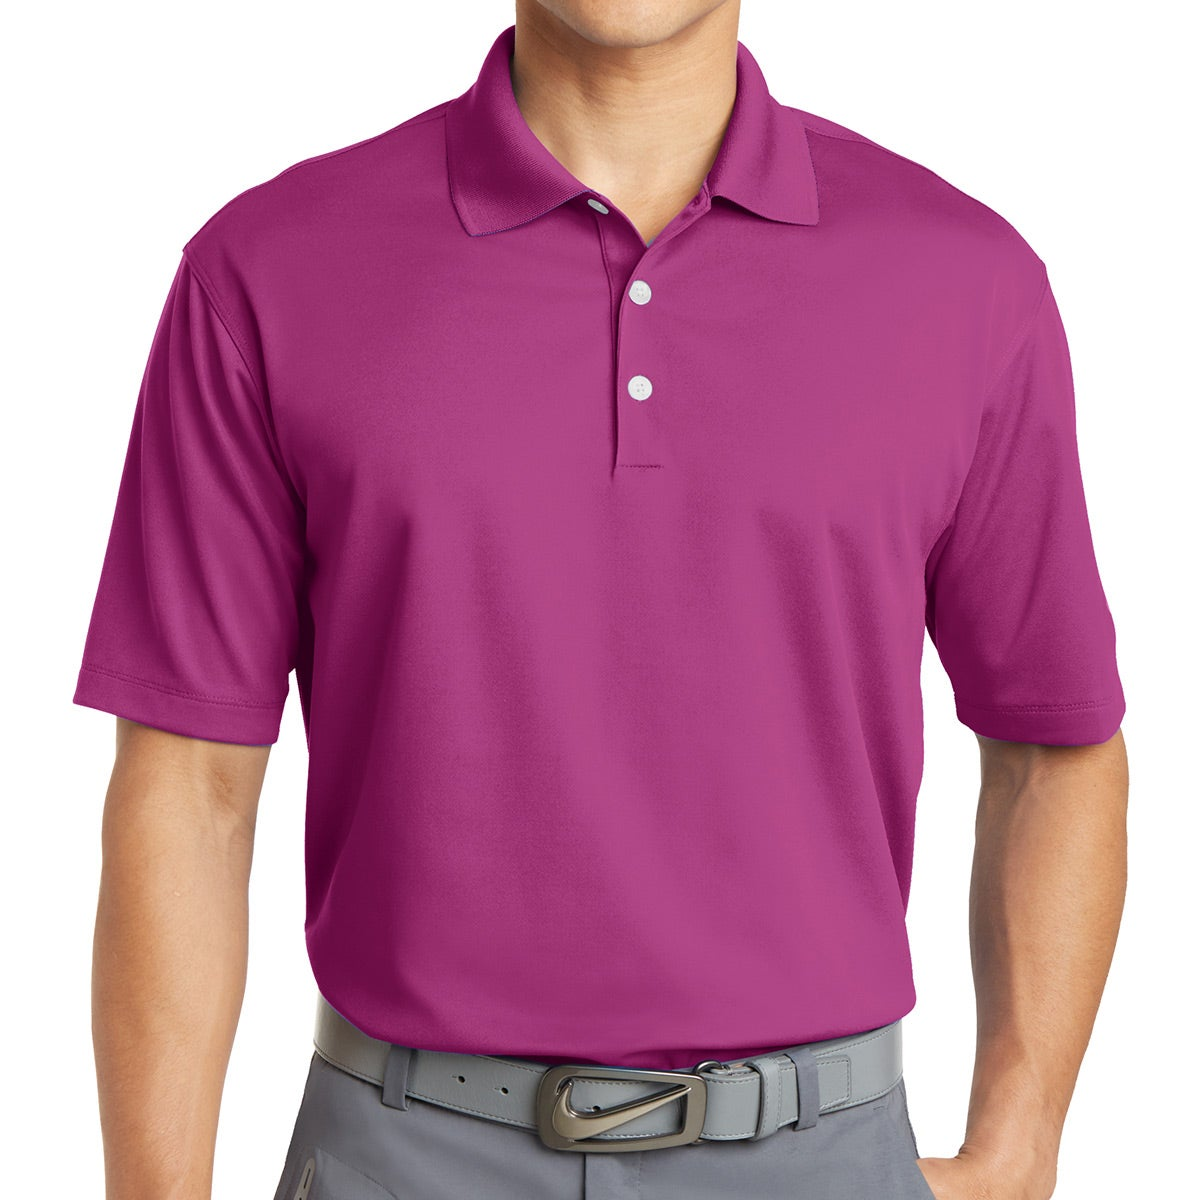 fd076880f CLICK HERE to Order Colors Nike Golf Dri-FIT Micro Pique Polo Shirts  Printed with Your Logo for $43.04 Ea.